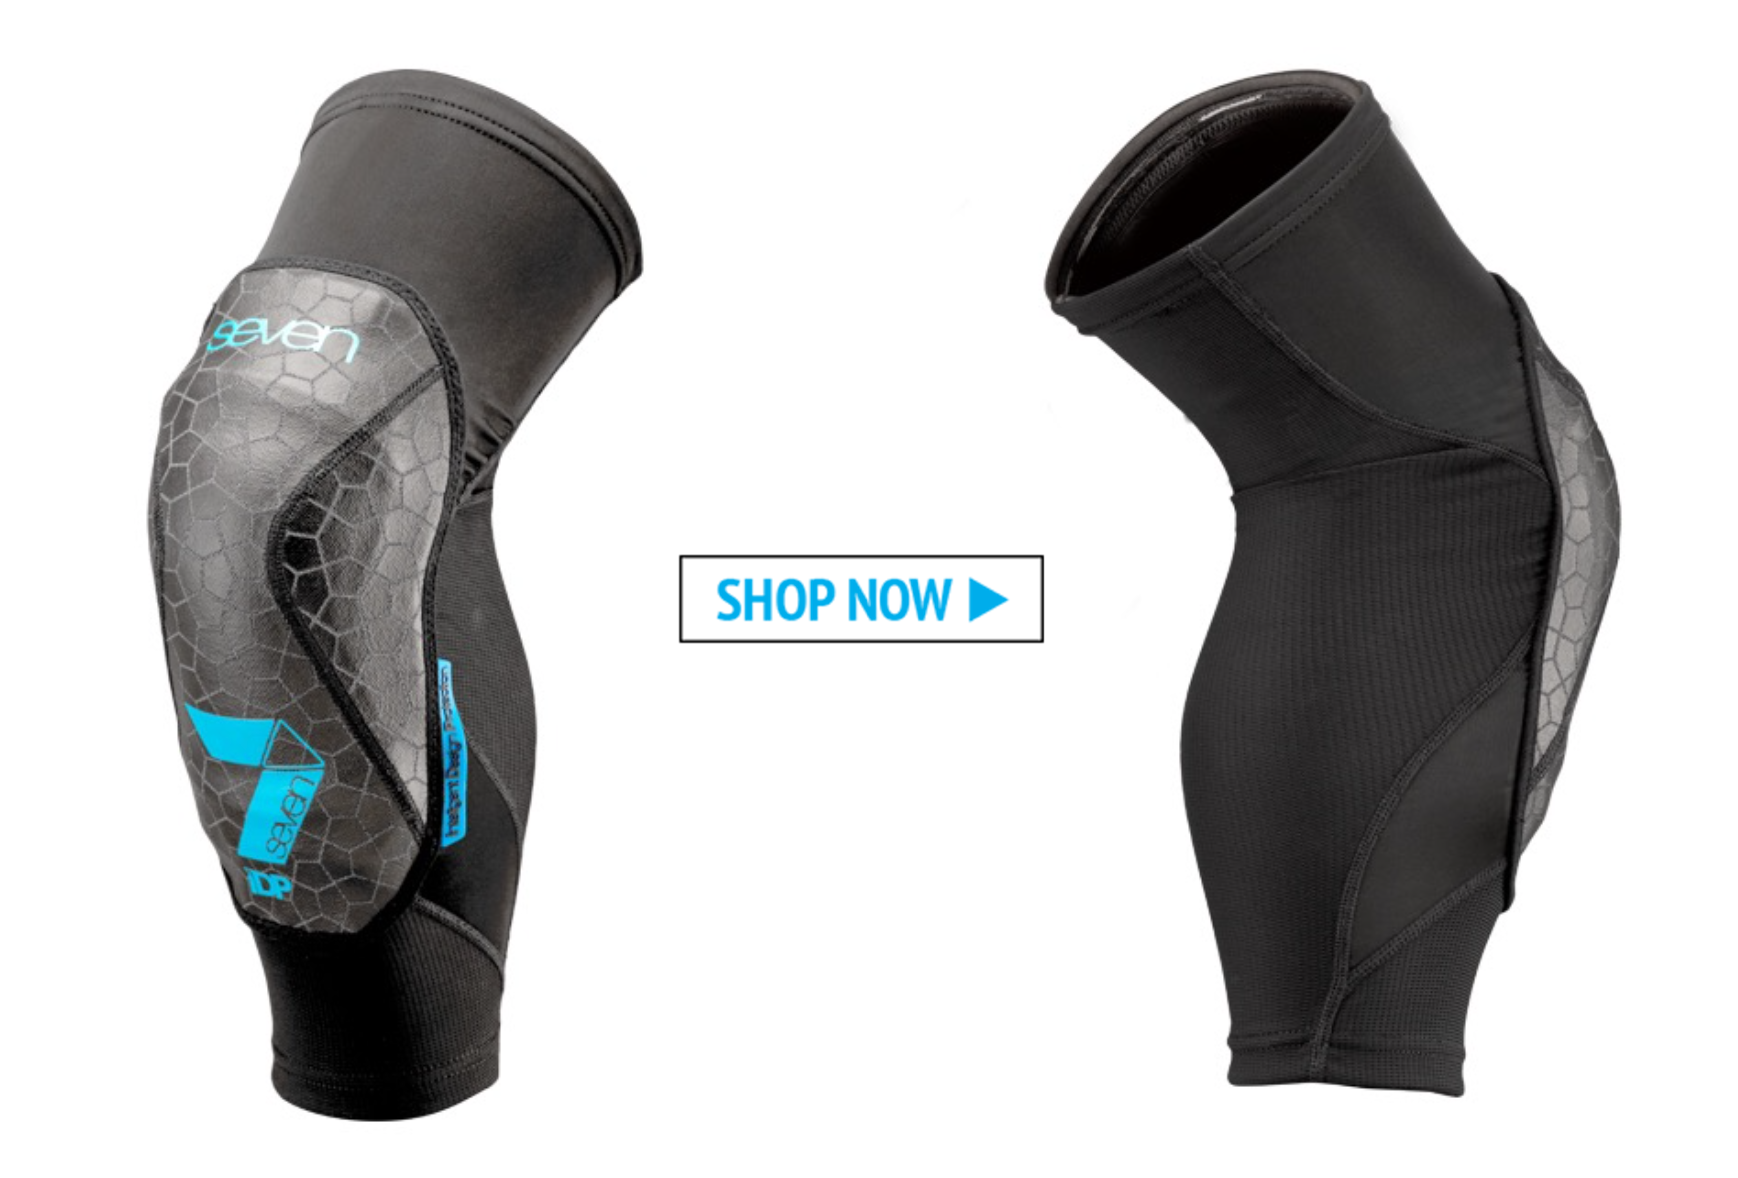 7iDP Covert Knee Pads Shop Now - Worldwide Cyclery